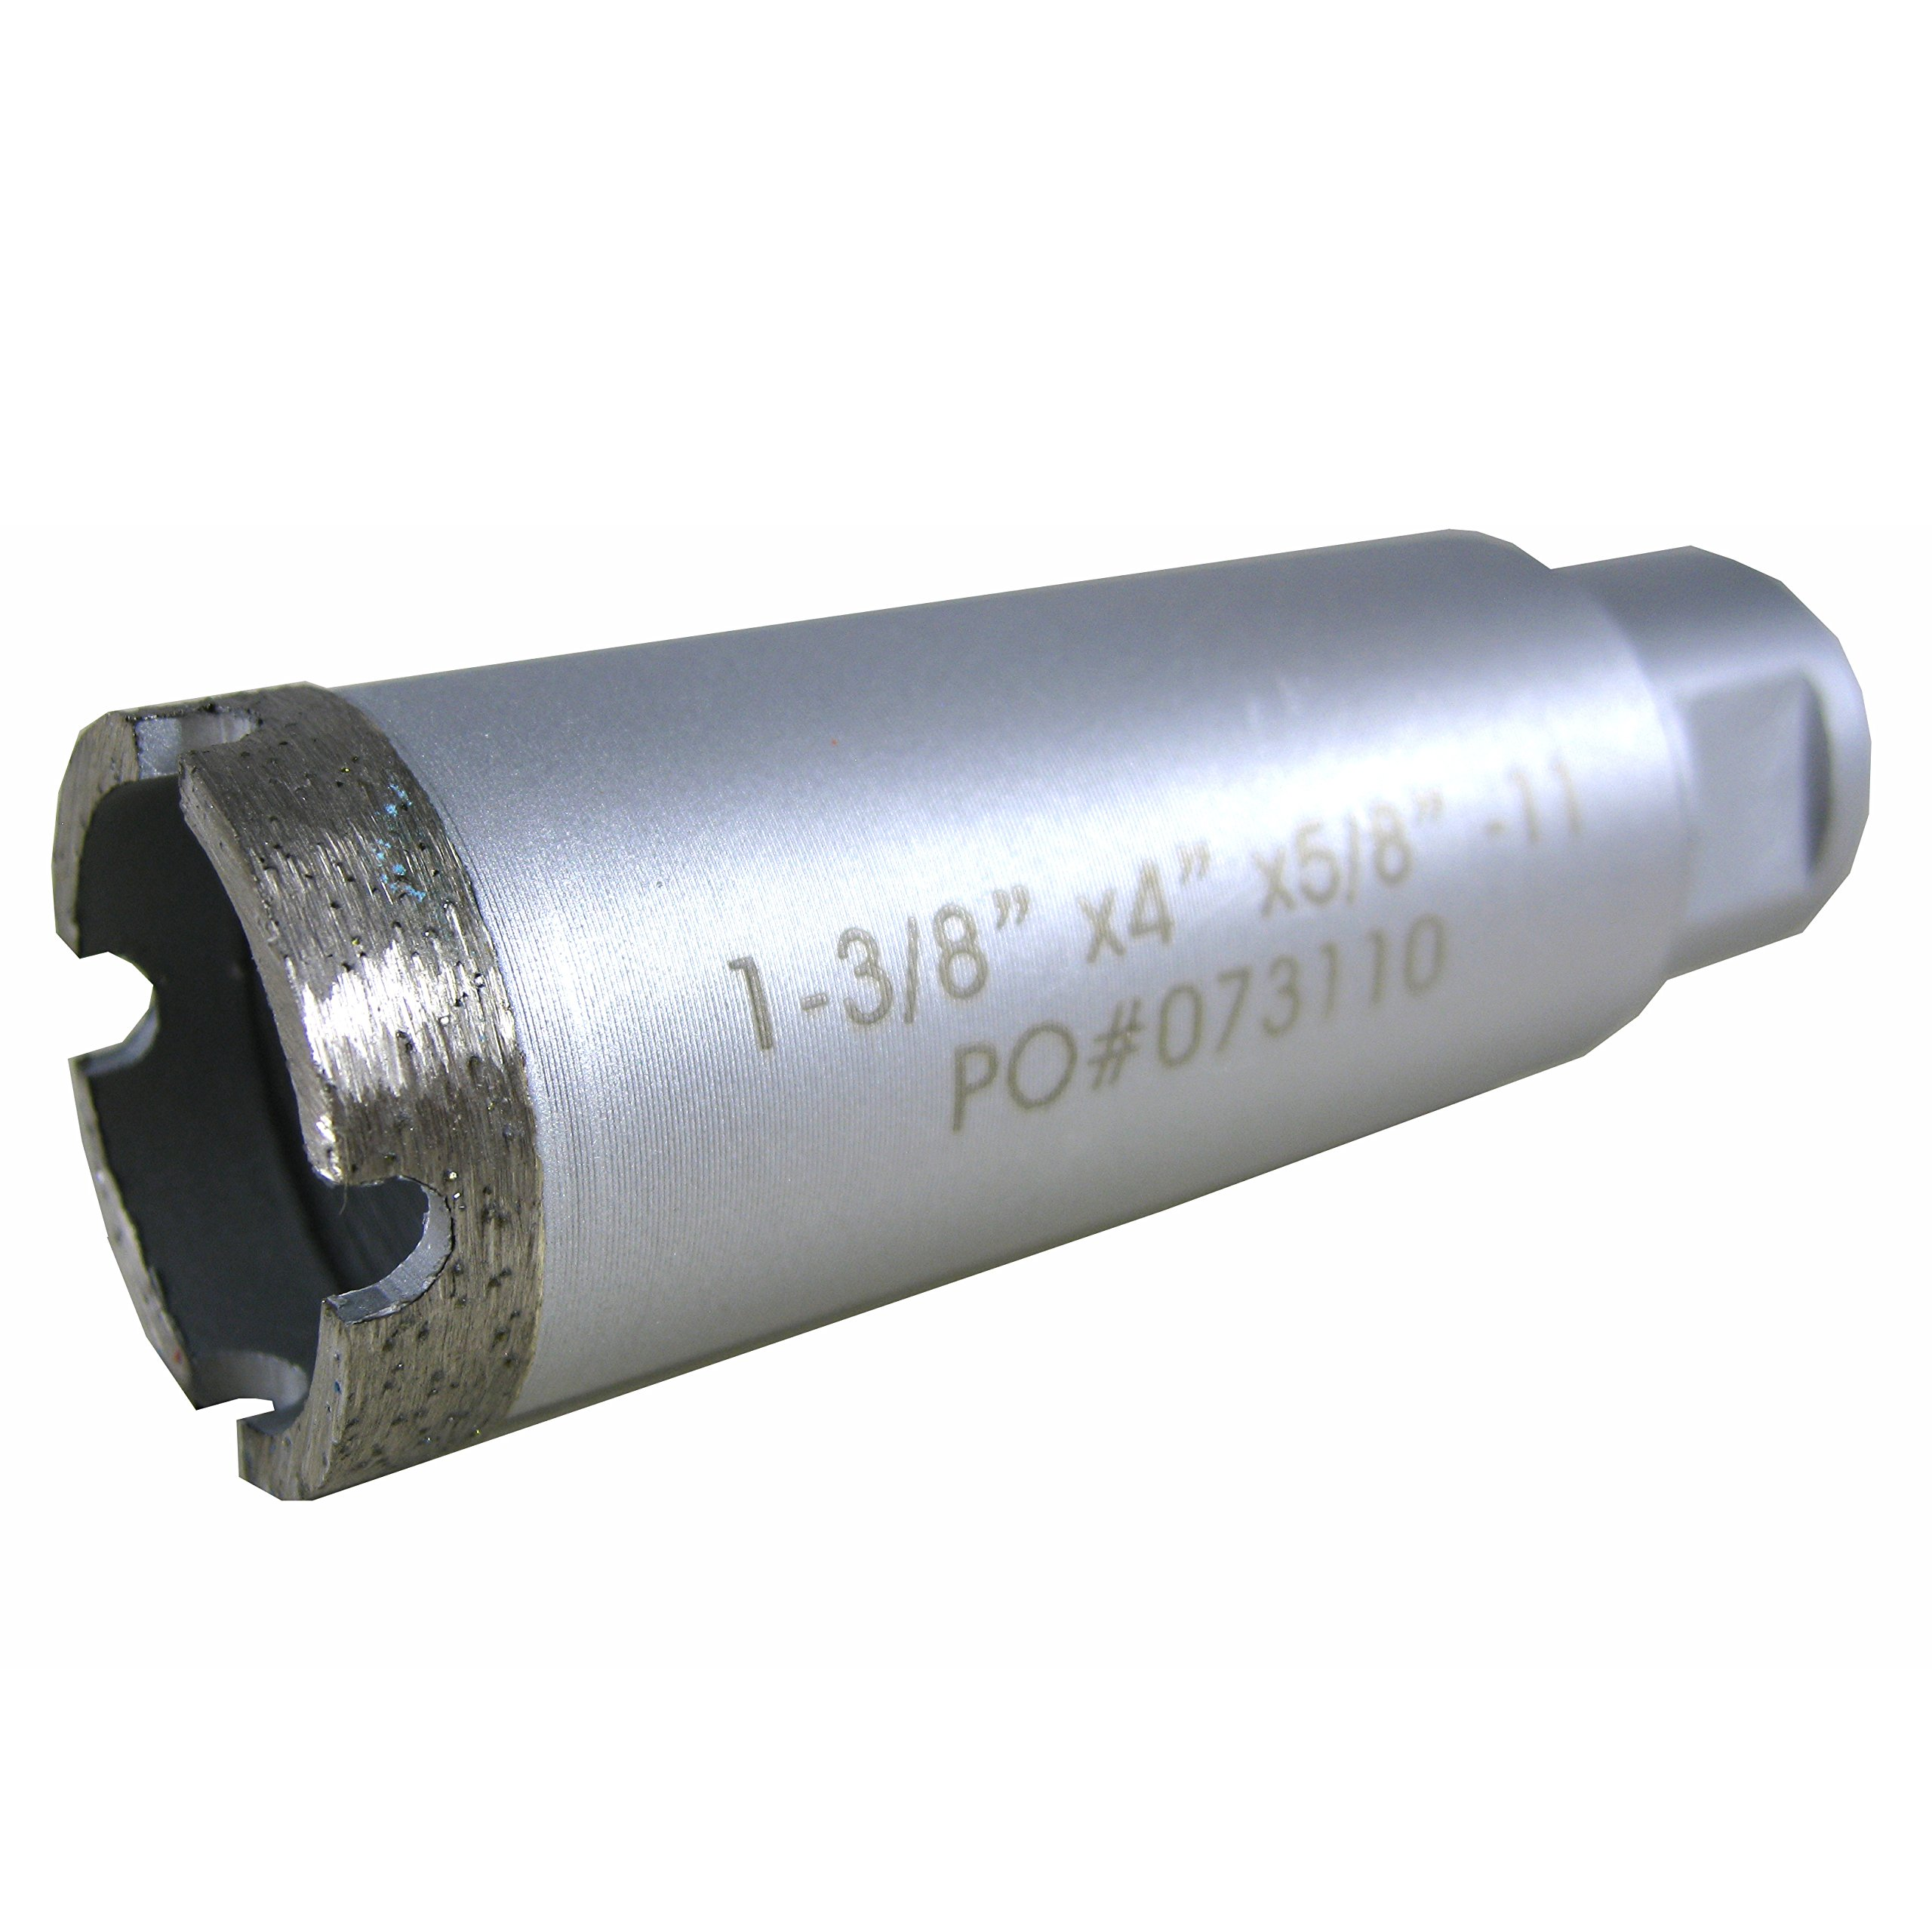 Wet Diamond Core Bit for Stone Drilling by Archer USA (1.375 in.)